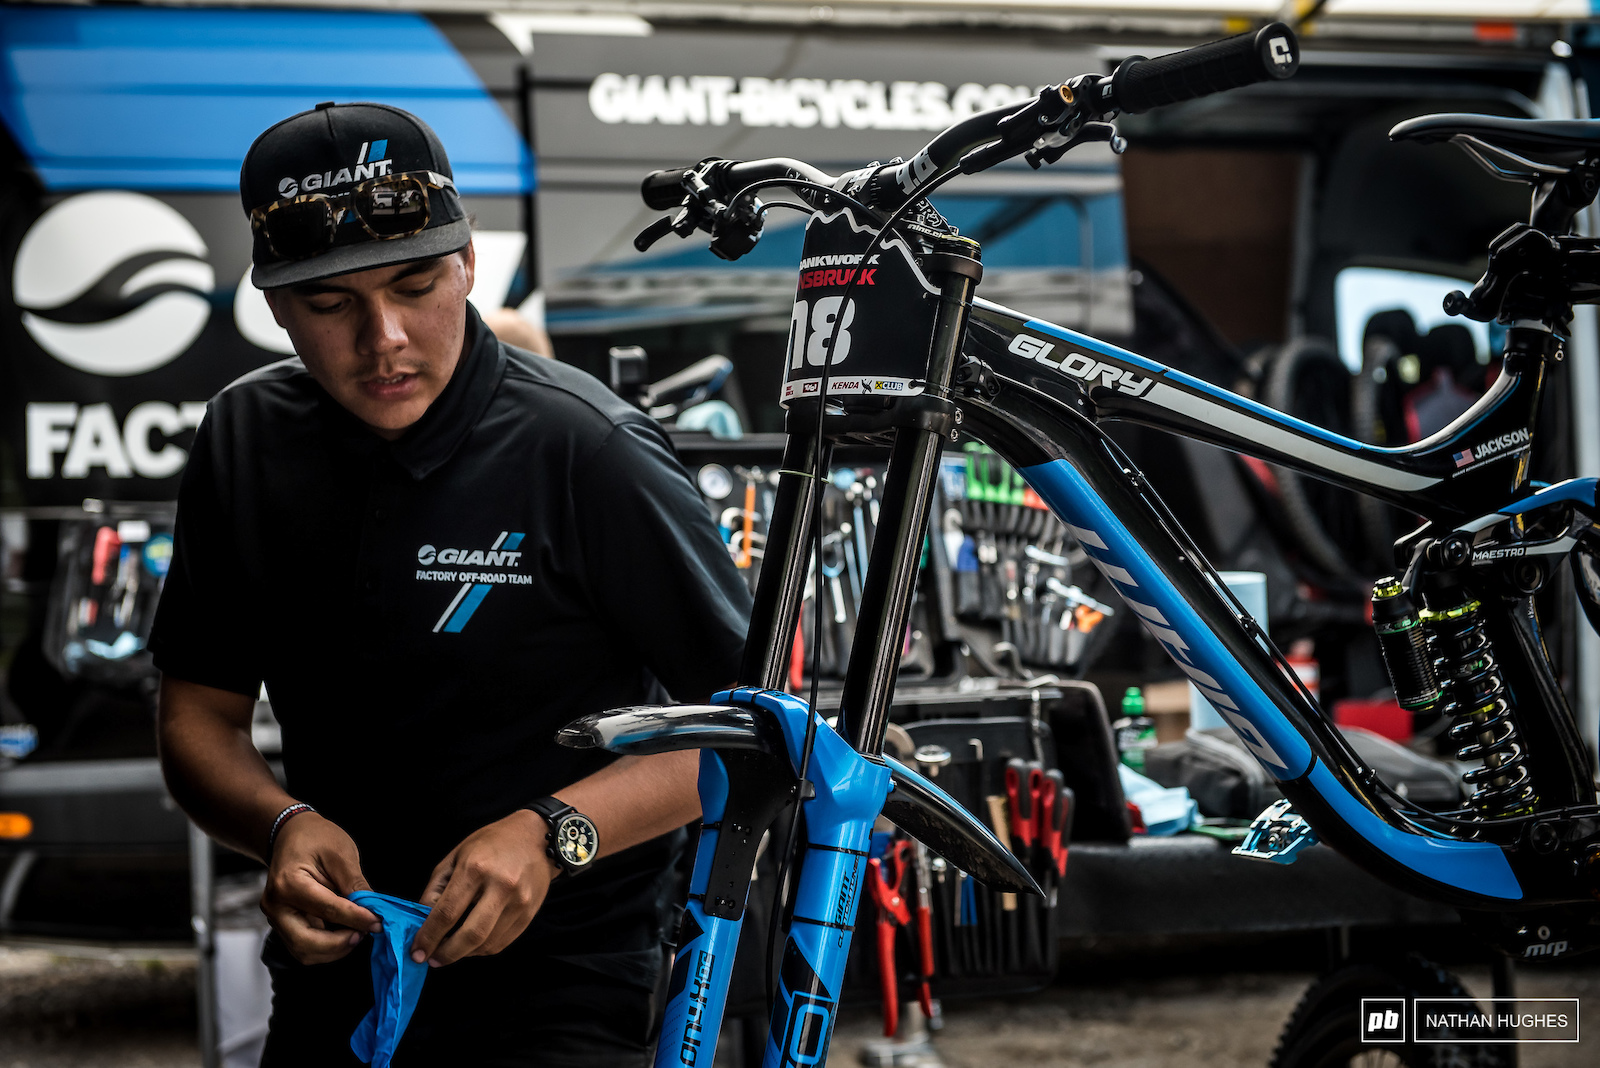 Eliot Jackson s whip getting race prepped at the Giant pits.